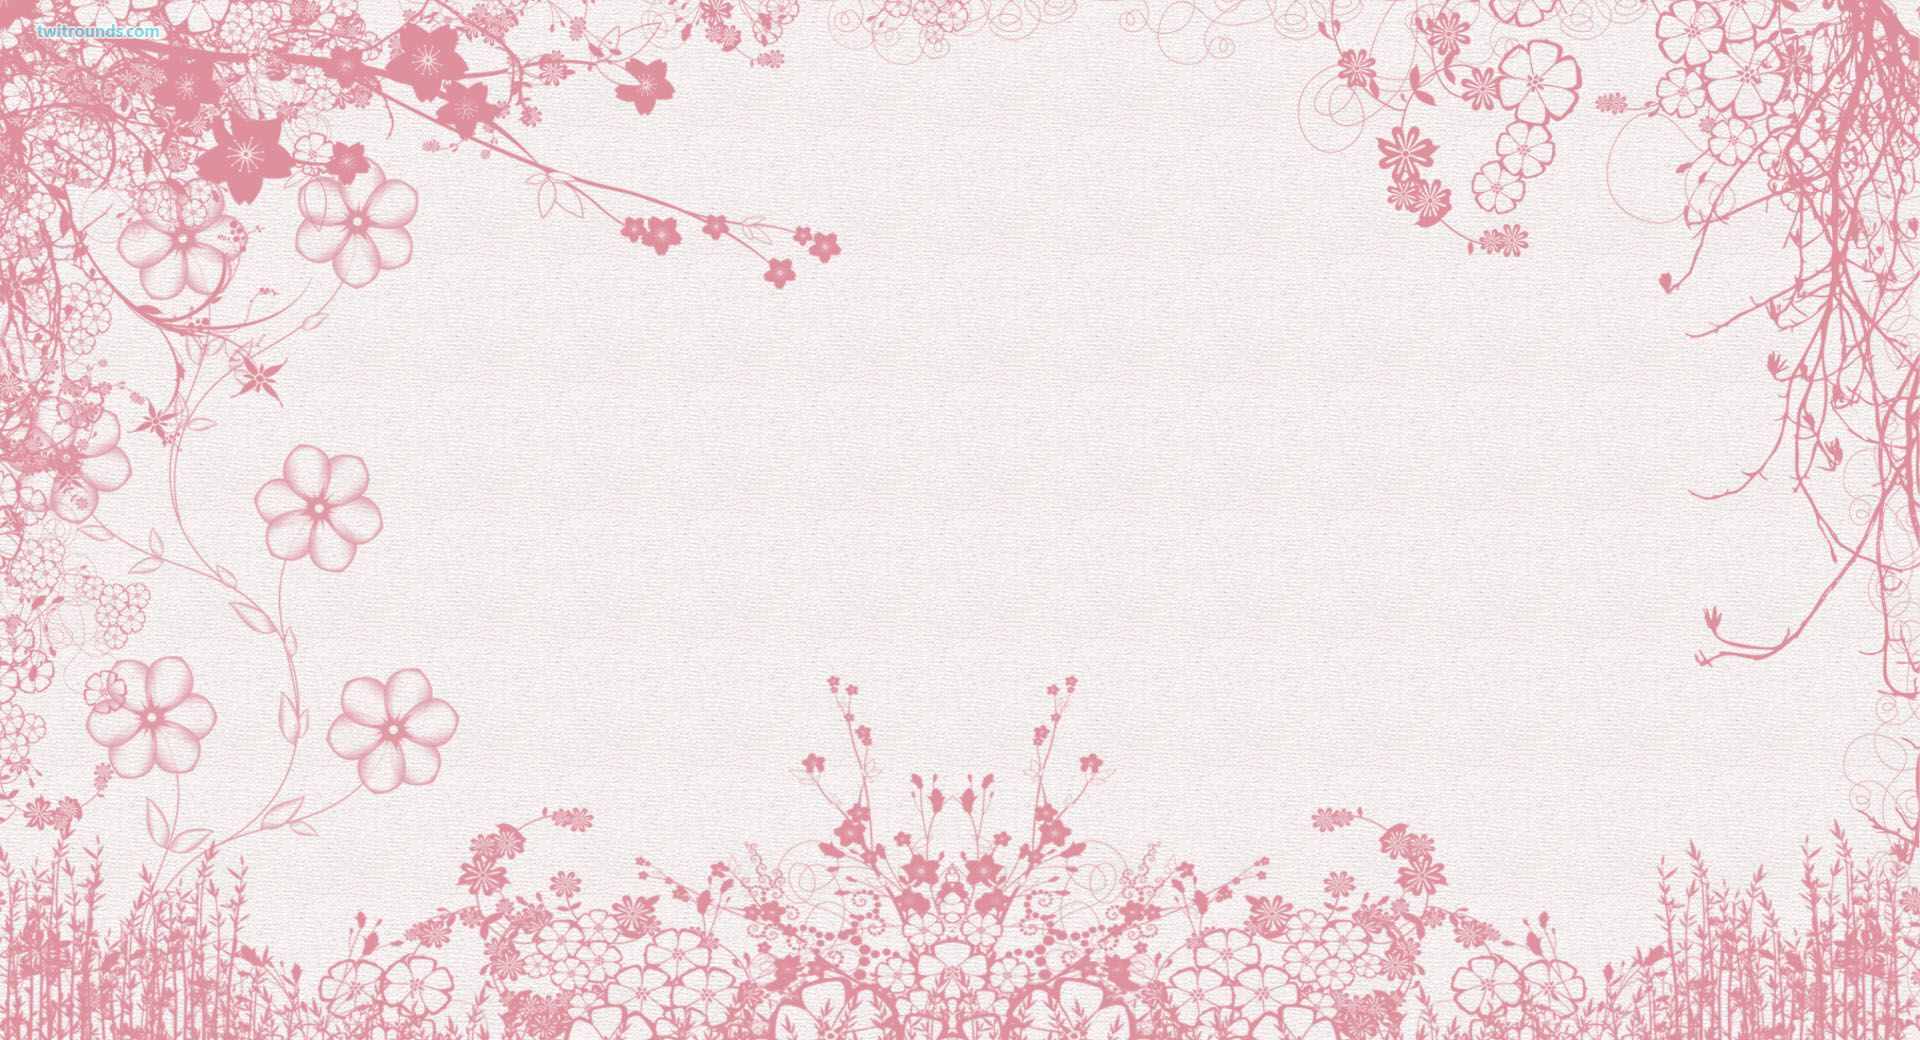 Flowerbackground Pink Flowers Twitter Background Twitter